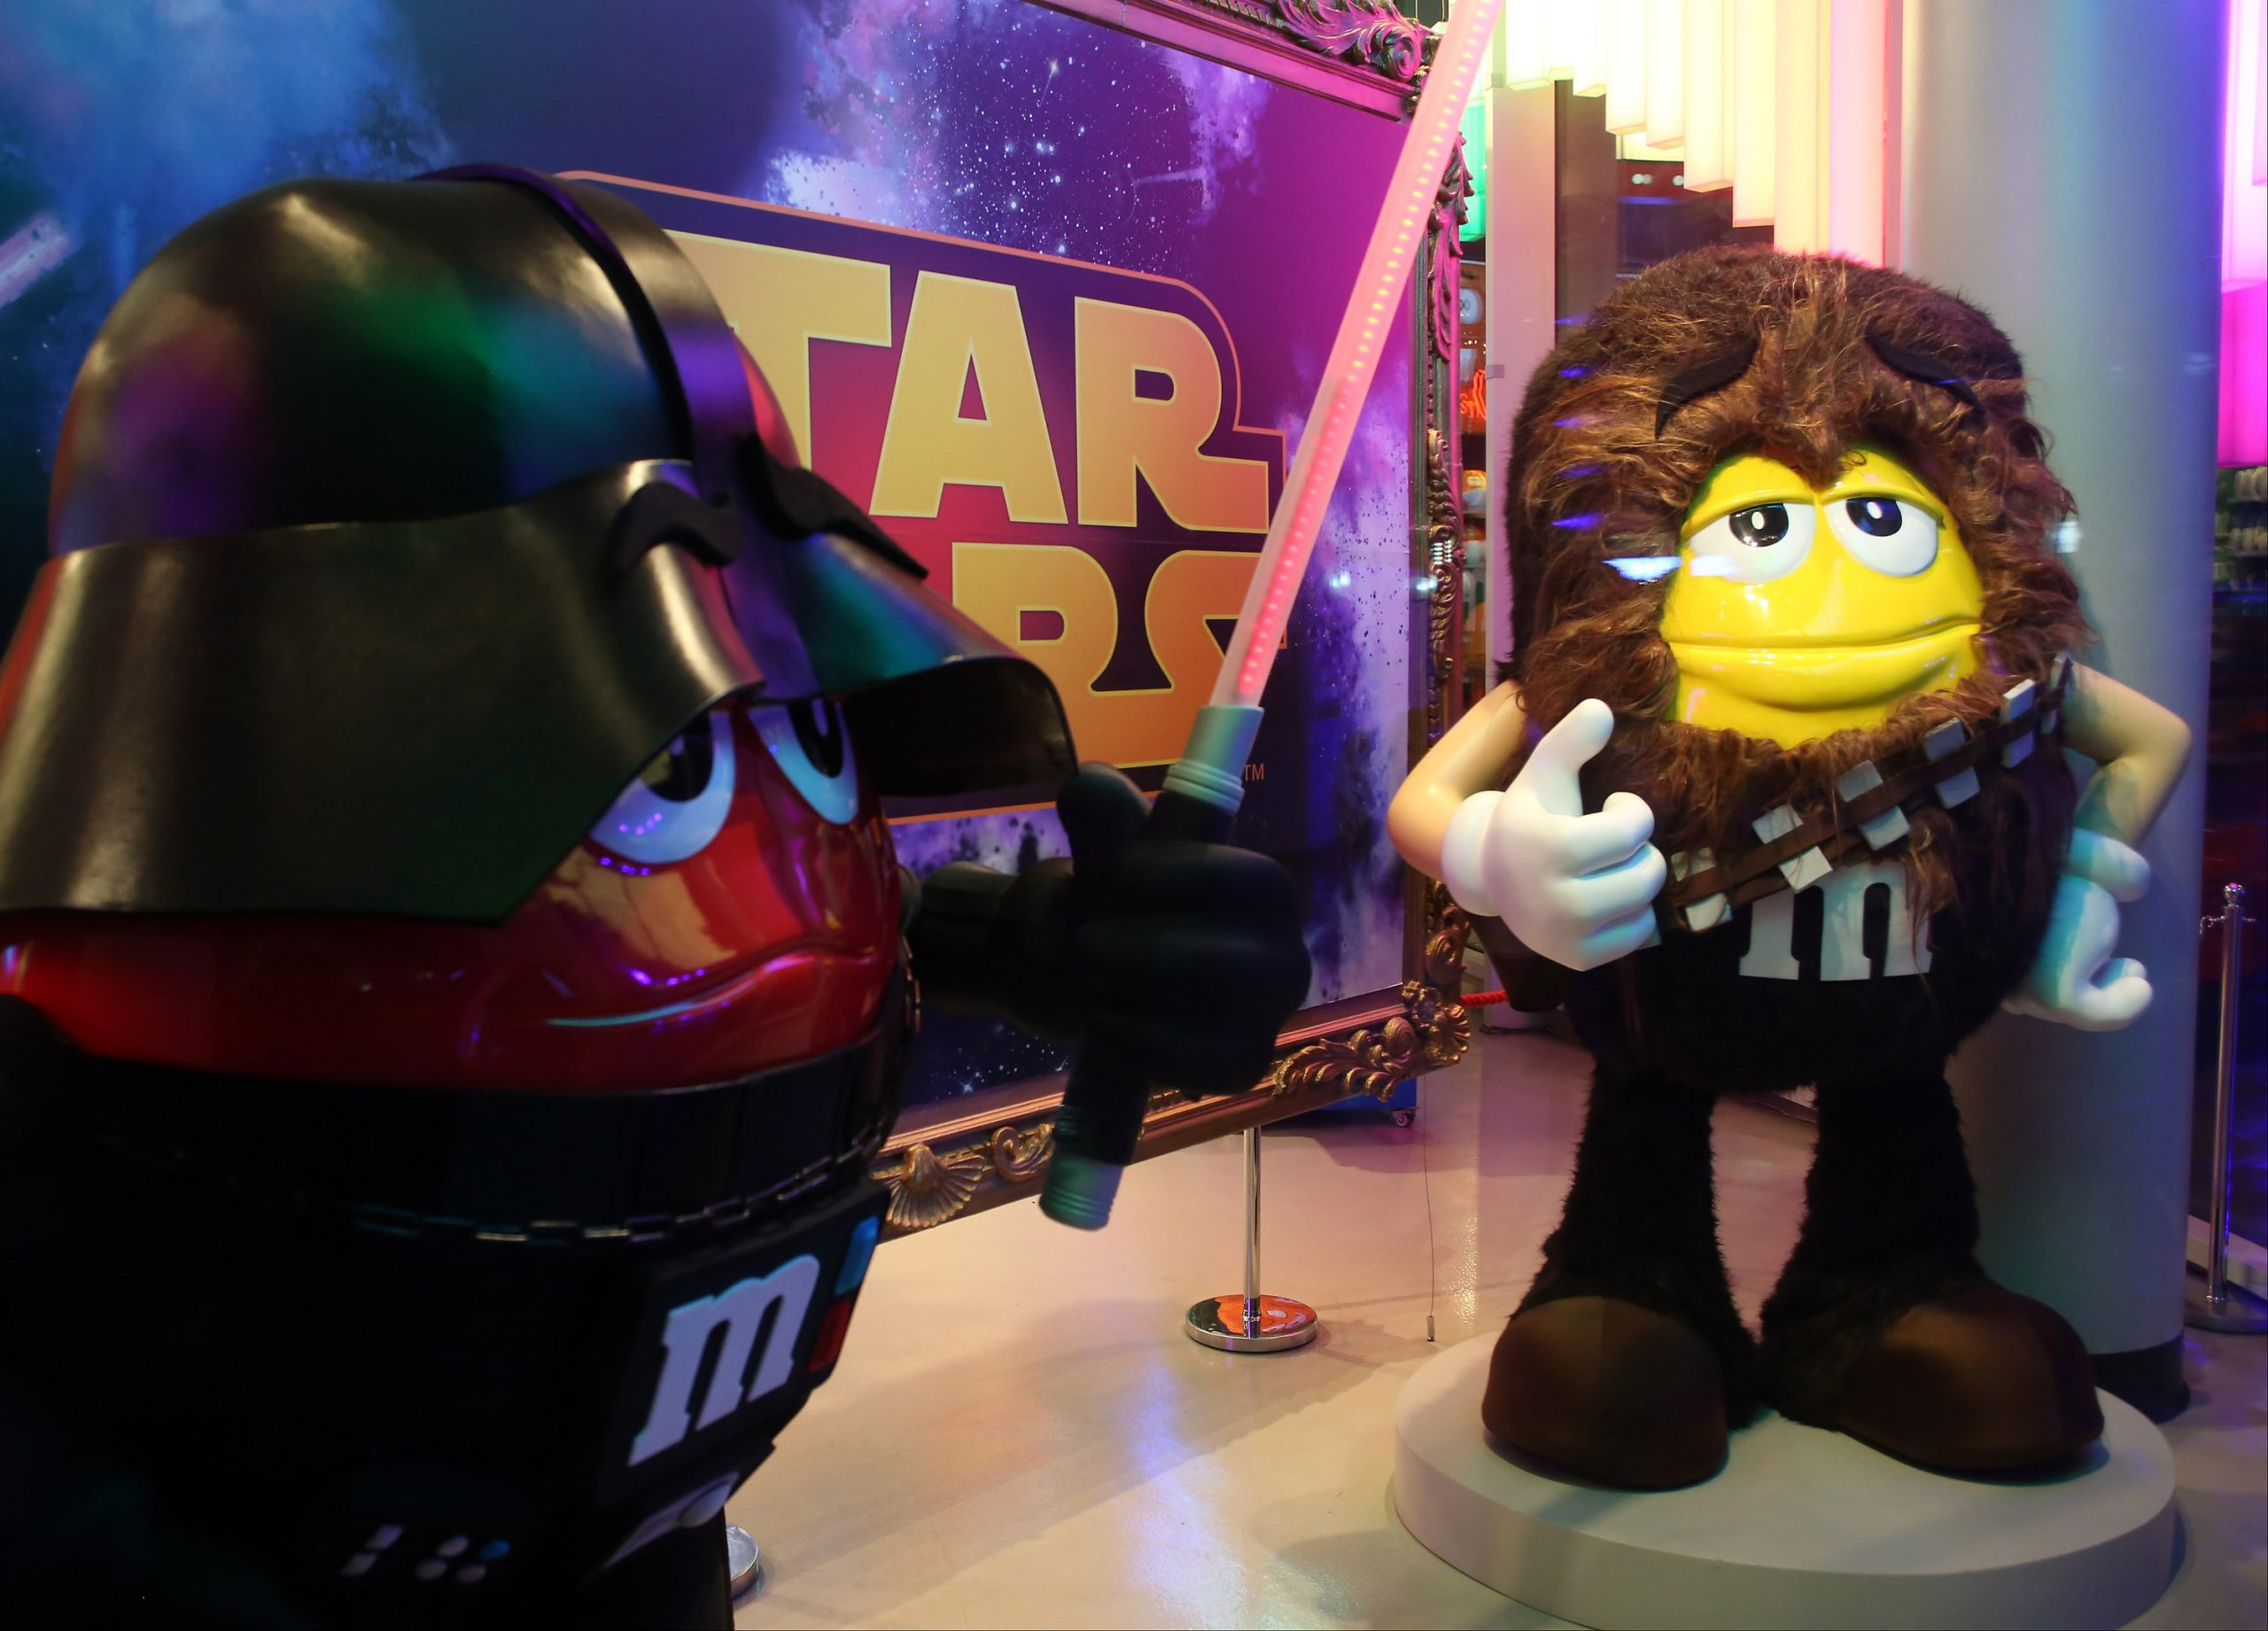 What brand hasn't attached itself to the new <i>Star Wars</i> film?